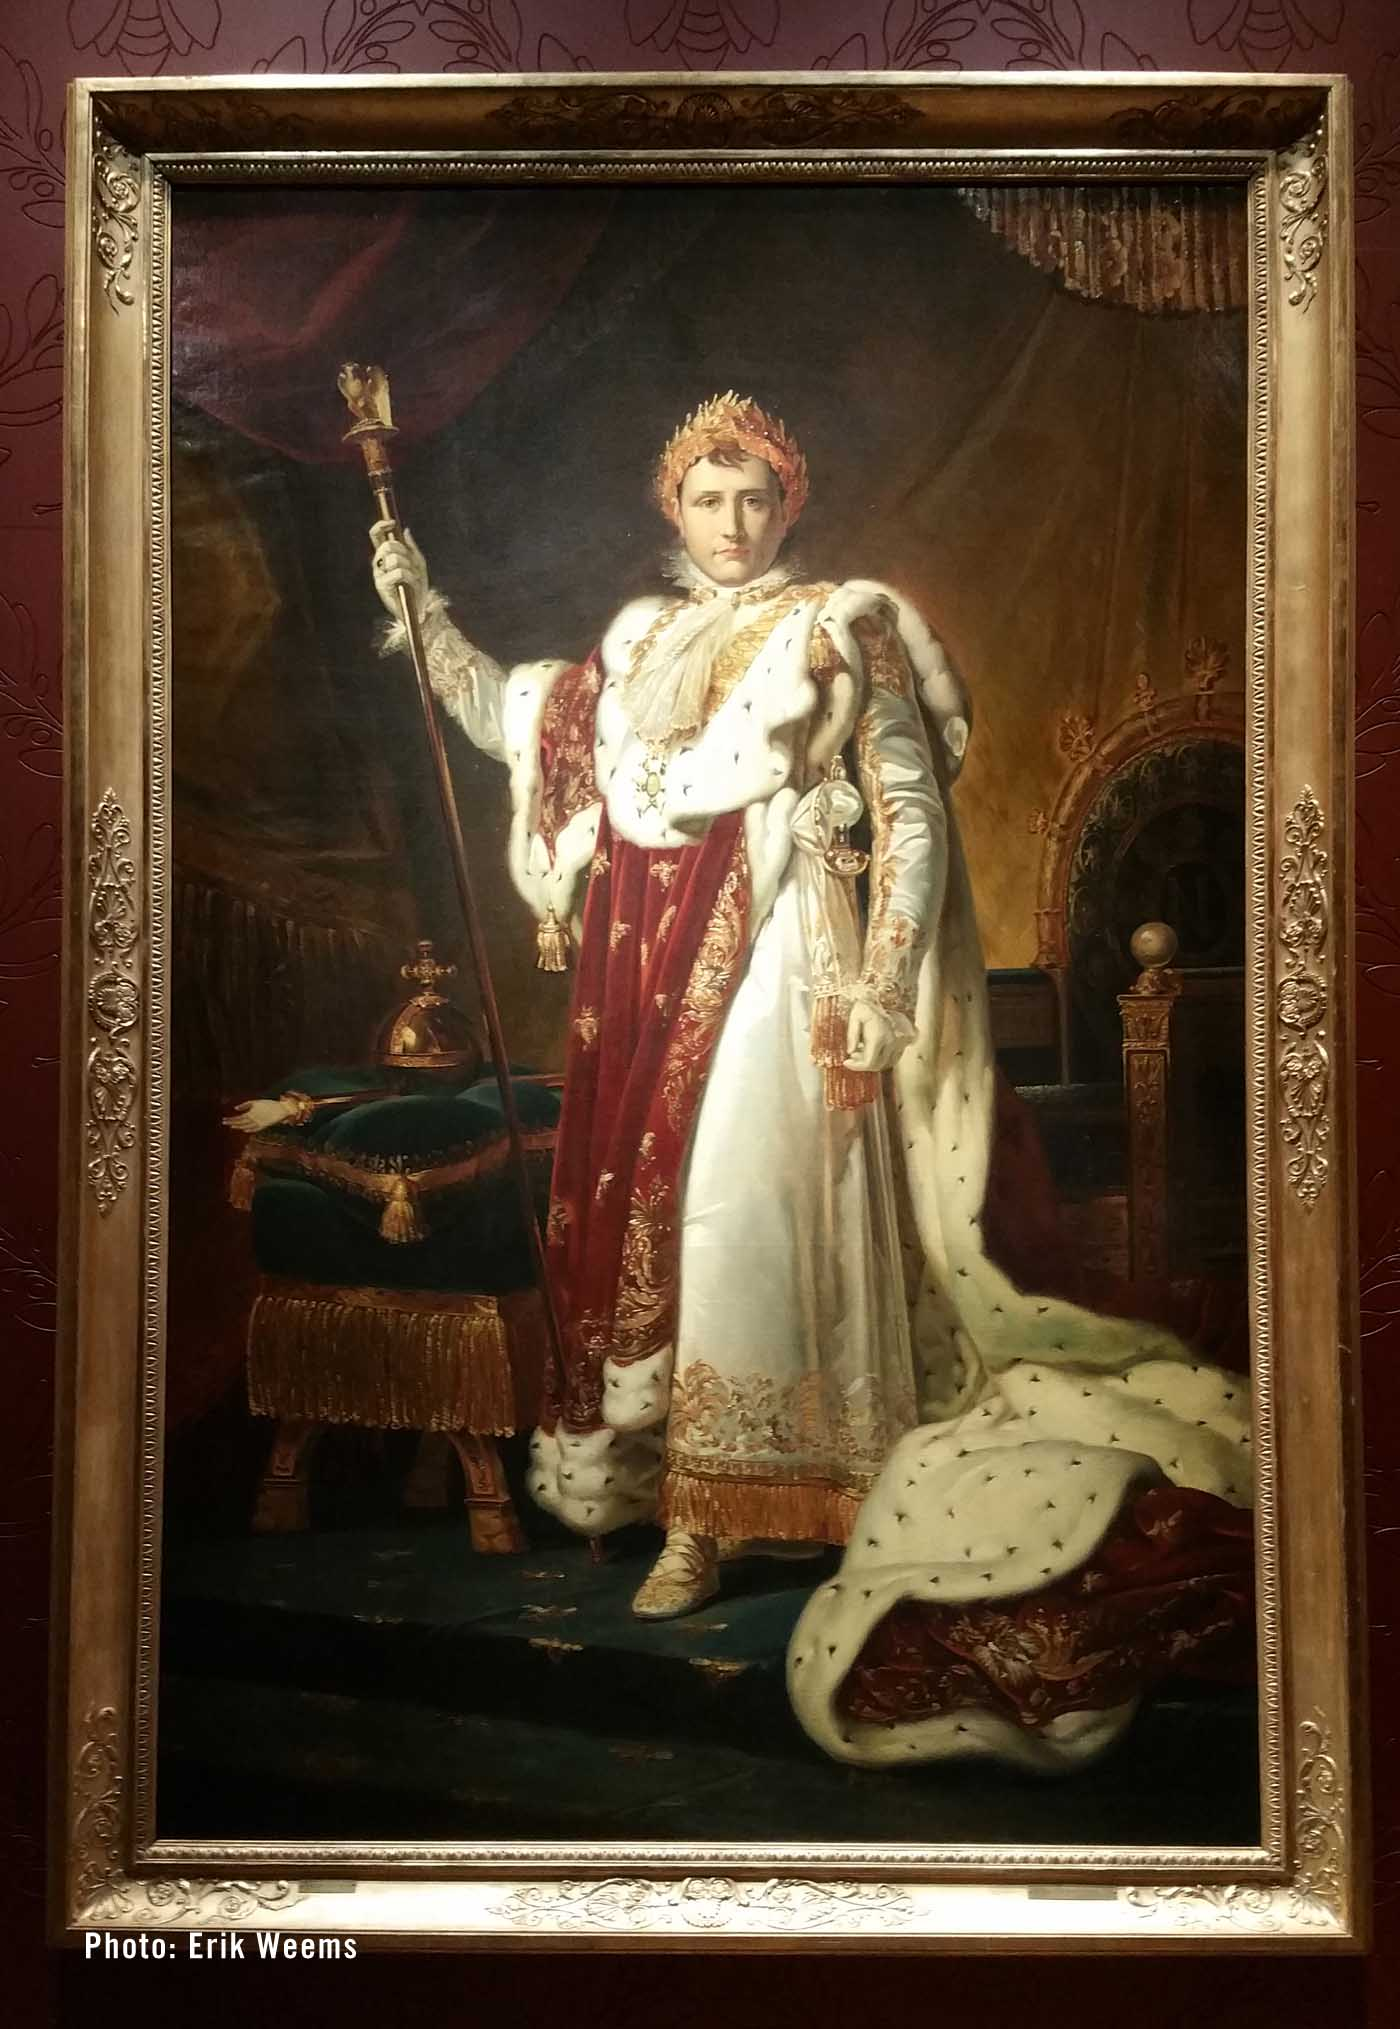 Large Size - Napoleon in his imperial robes - painting by Francois Gerald 1805